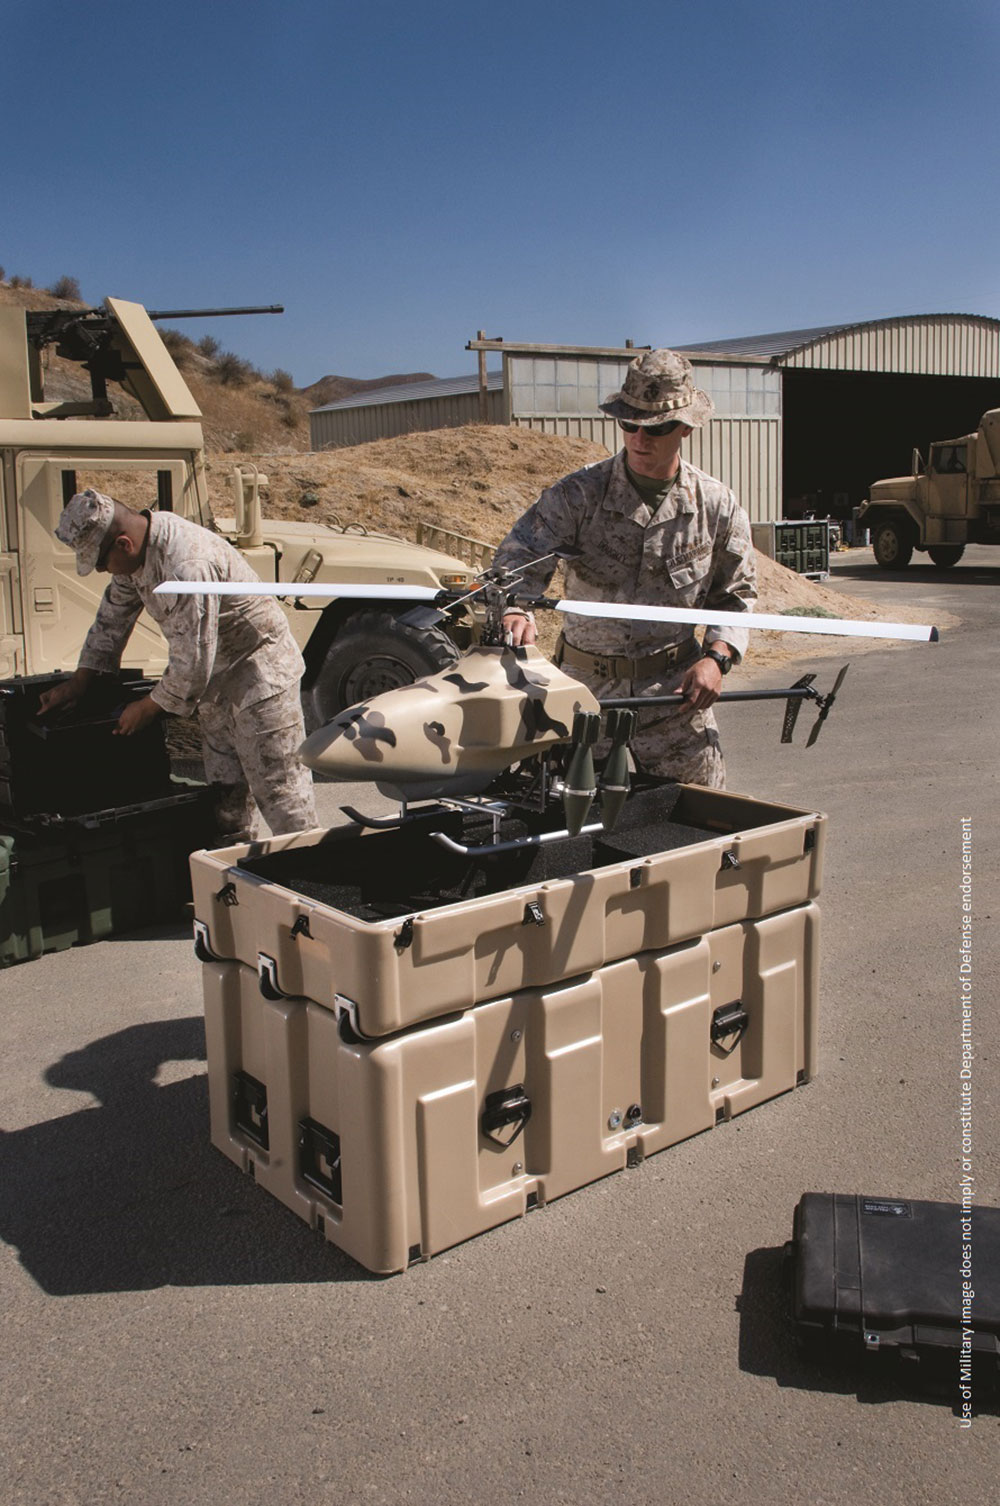 Peli-Hardigg Showcases at IDEF its Advanced Packaging and Transport Solutions for Defense